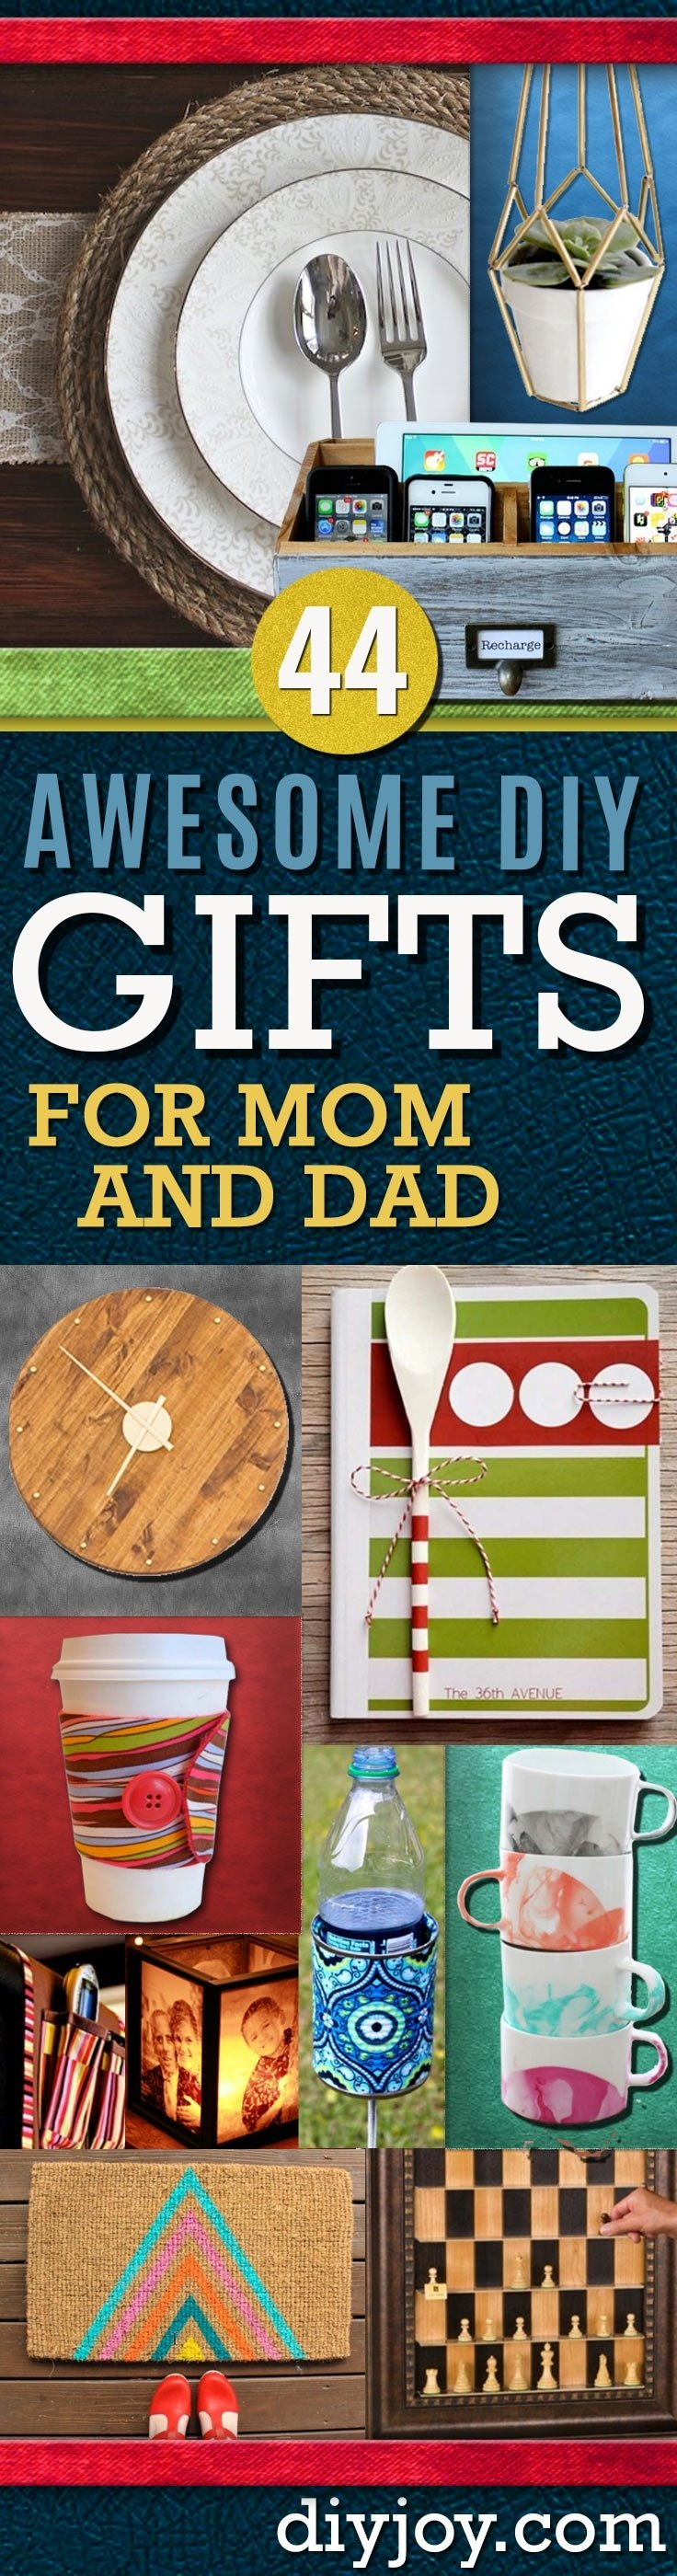 10 Stylish Christmas Gift Idea For Mom awesome diy gift ideas mom and dad will love 27 2021